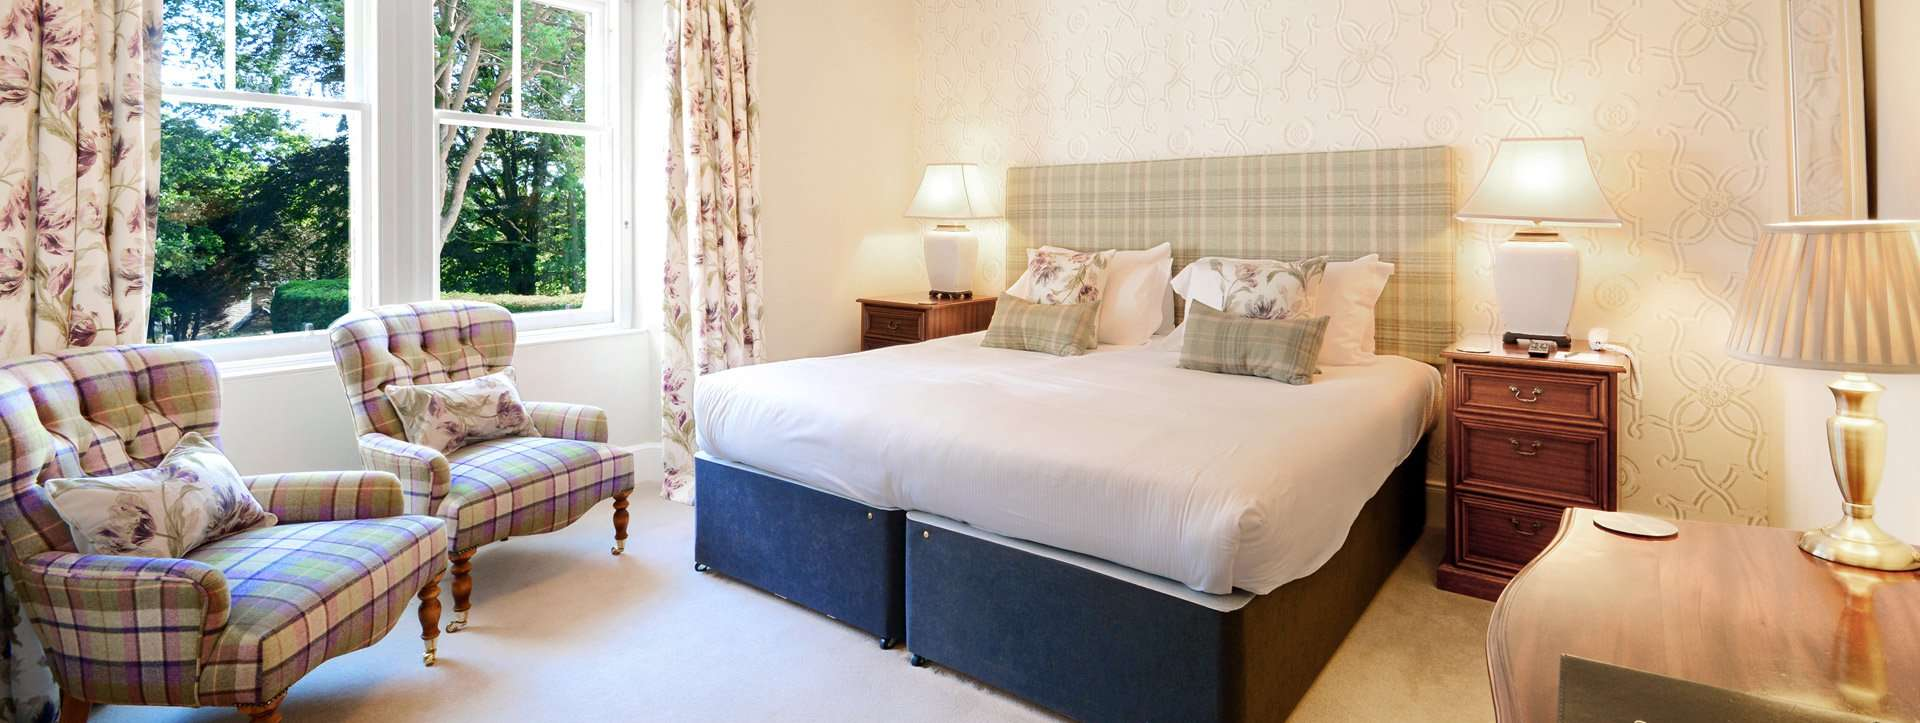 Hotel in Pitlochy Classic Rooms